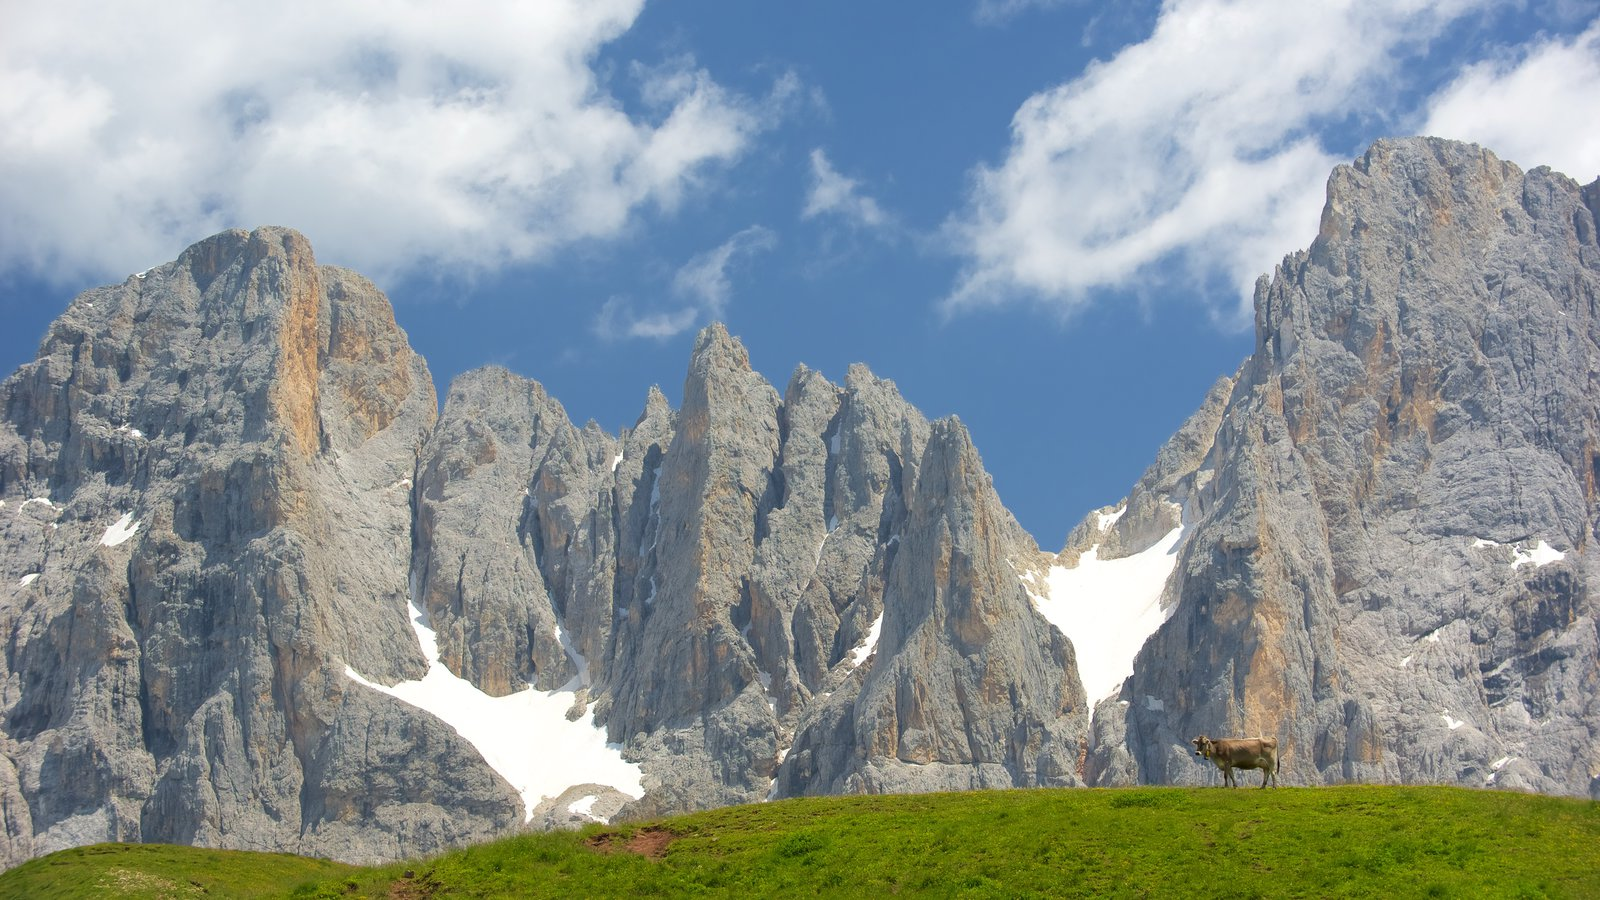 Passo Rolle which includes skyline, land animals and mountains